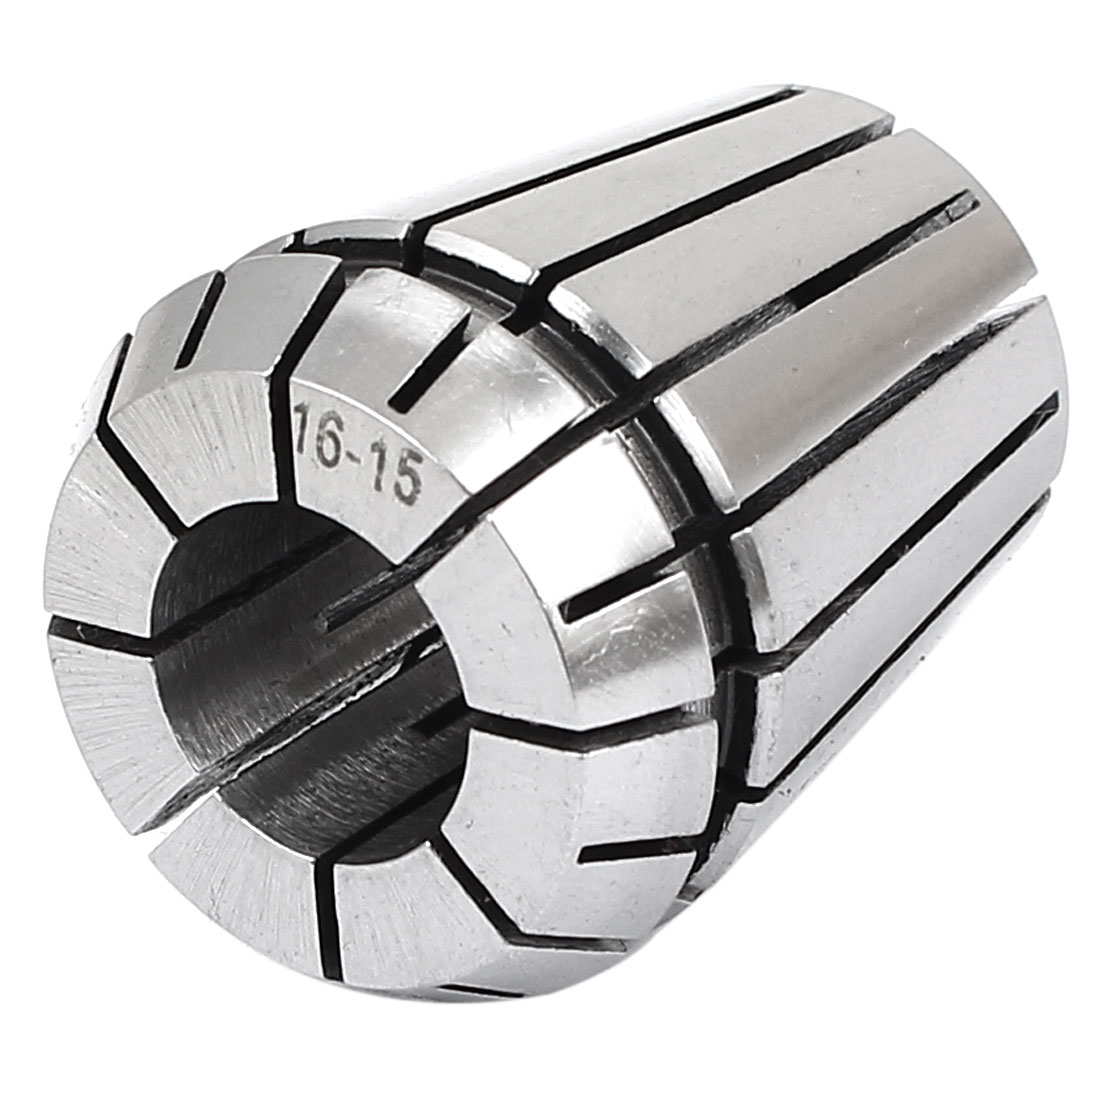 ER32 16mm Clamping Dia CNC Engraving Milling Machine Spring Collet